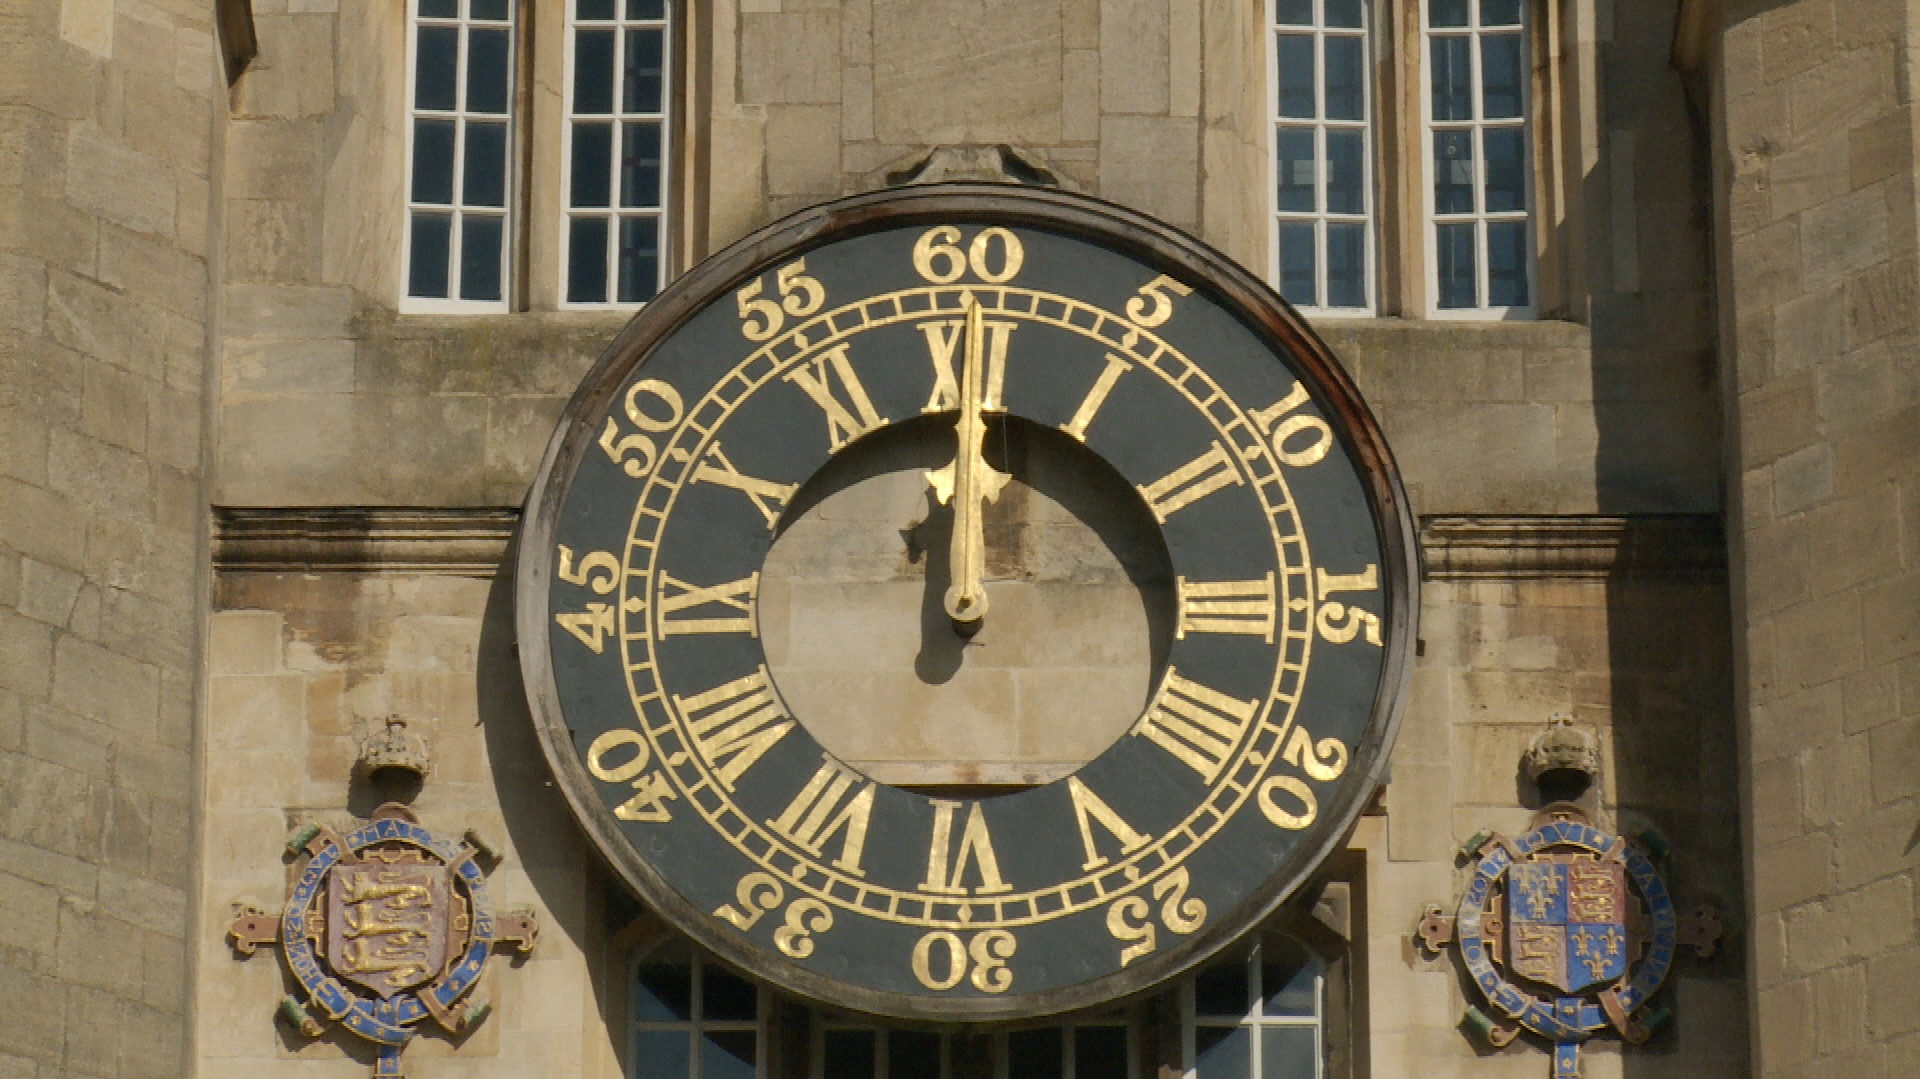 Runners Latest Attempt To Beat The College Clock Anglia